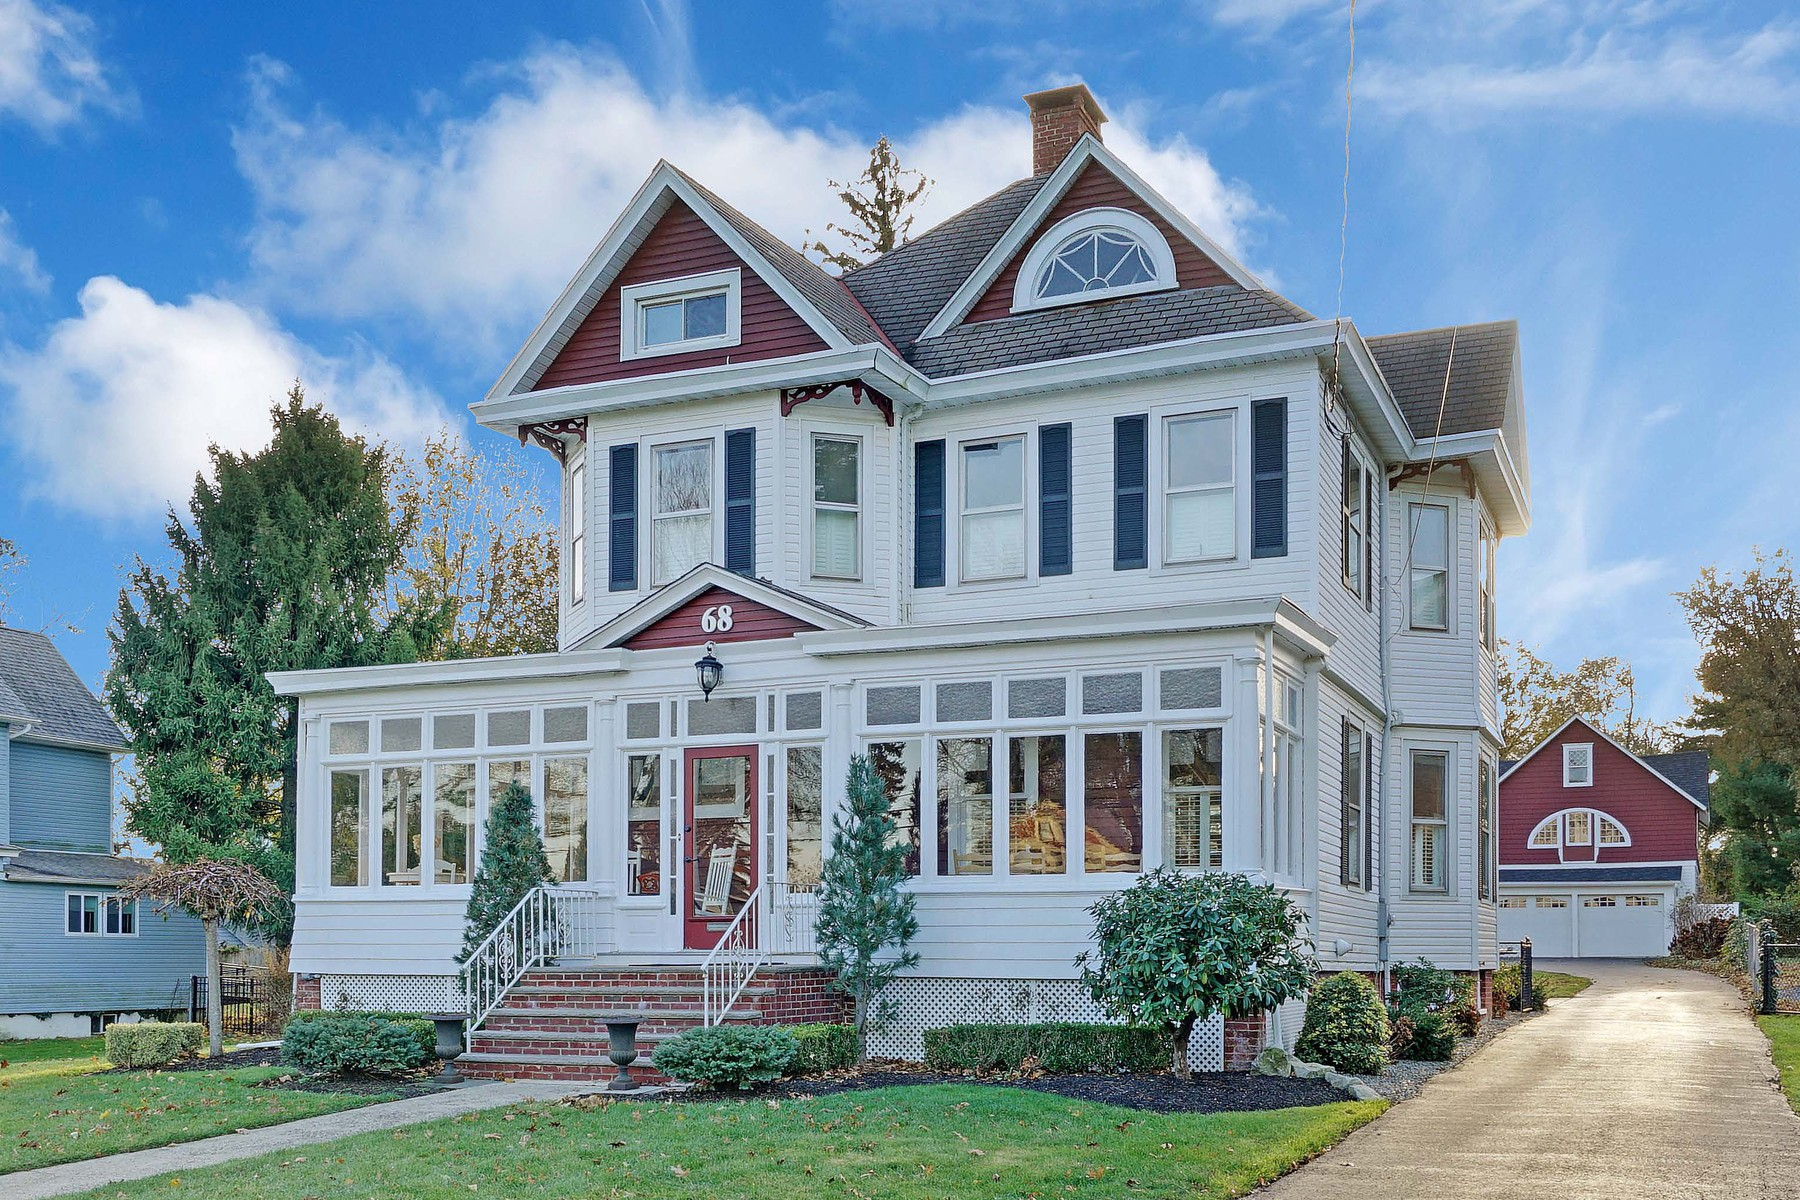 Single Family Home for Sale at Stately Victorian in Freehold 68 Court Street, Freehold, New Jersey 07728 United States